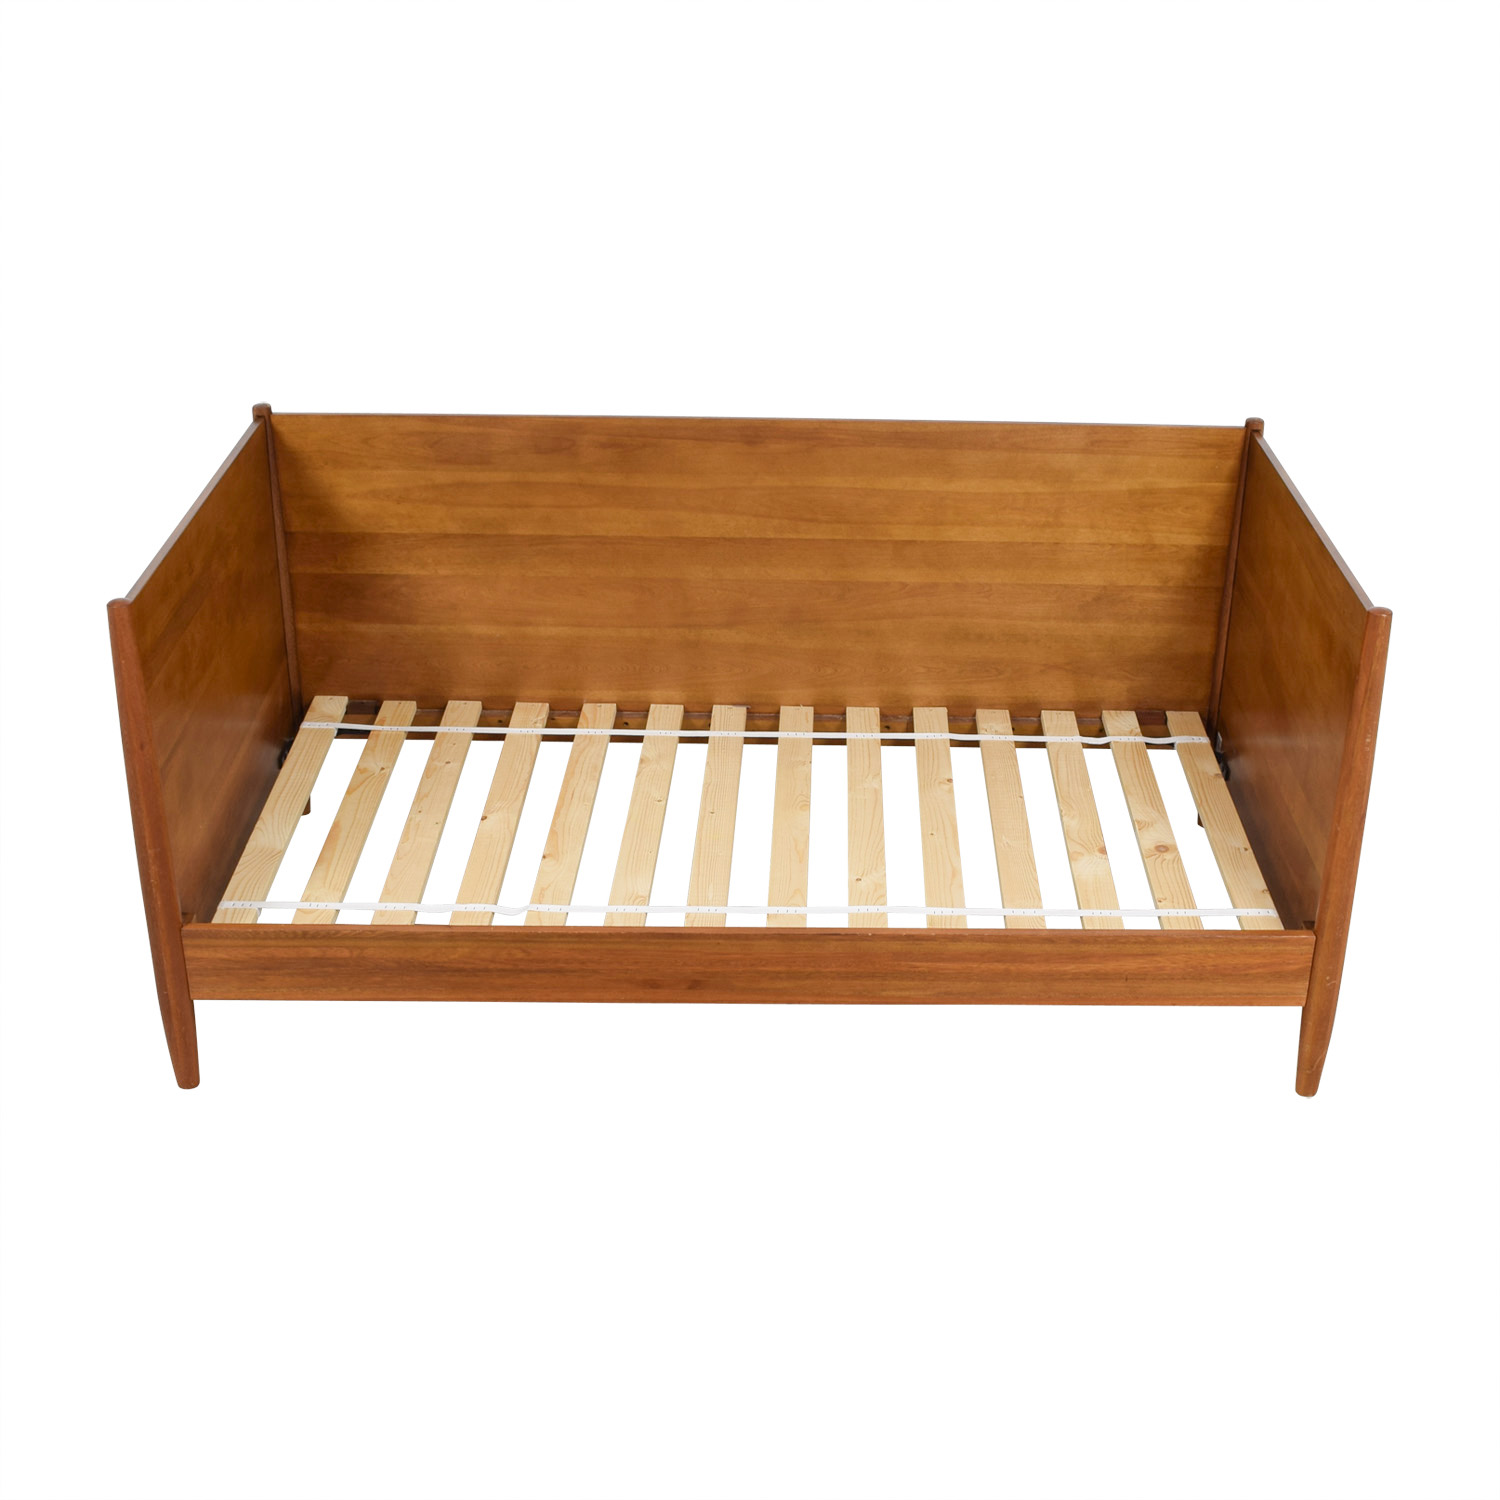 West Elm West Elm Wood Daybed Beds